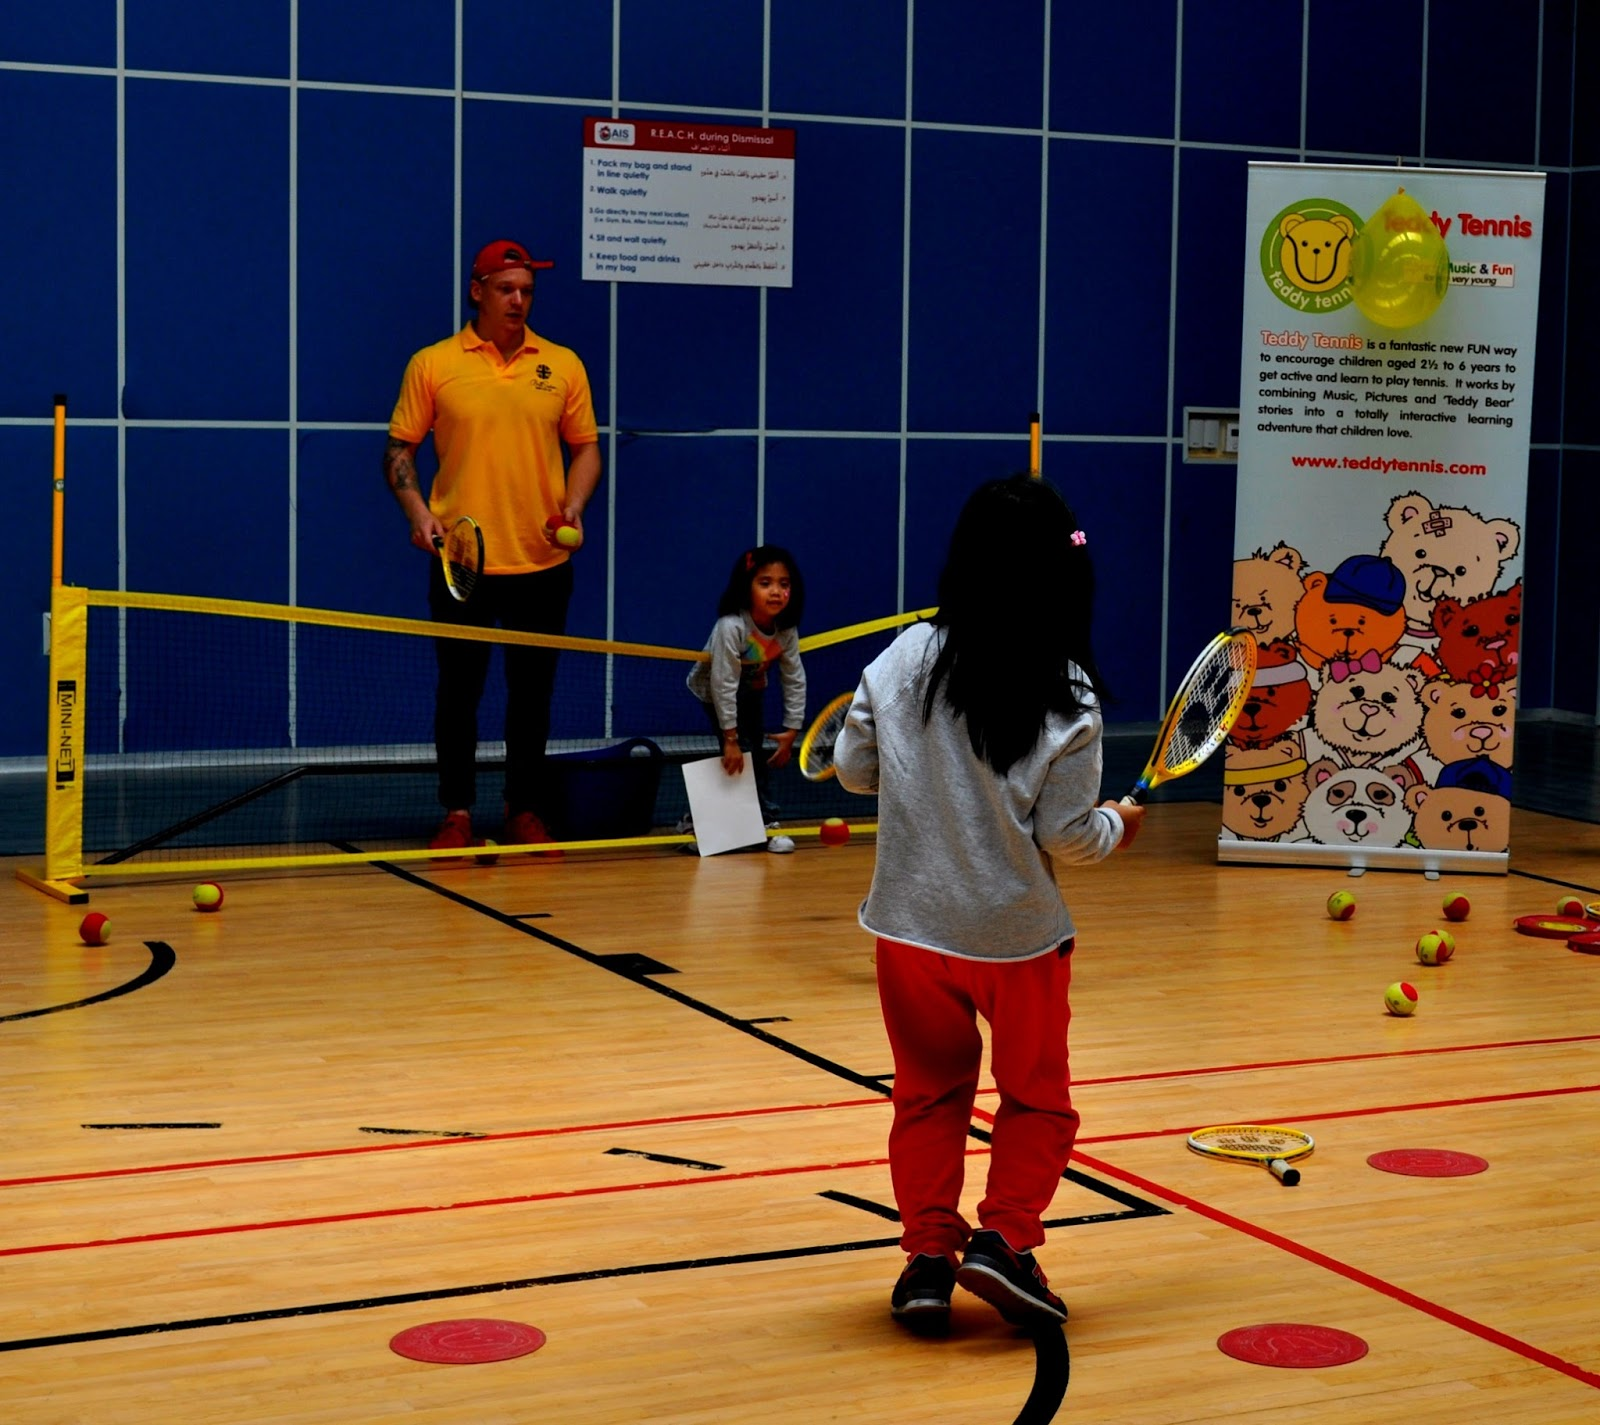 BritSwim Teddy Tennis lessons for kids Oman